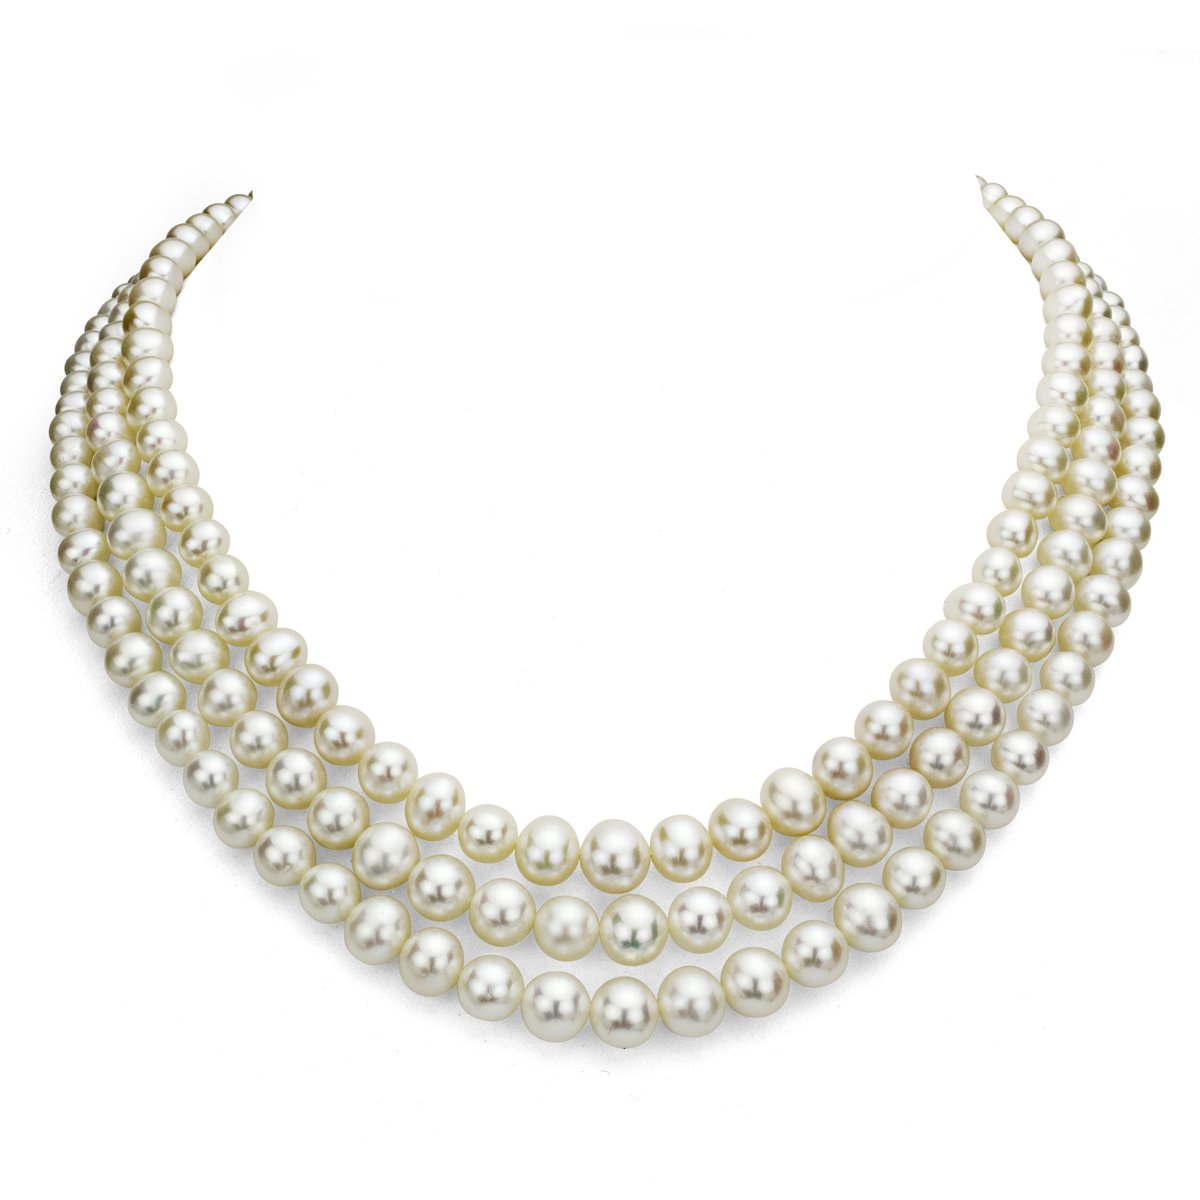 Sterling Silver 6.5-7mm 3-rows White Freshwater Cultured High Luster Pearl Necklace, 18'' by La Regis Jewelry